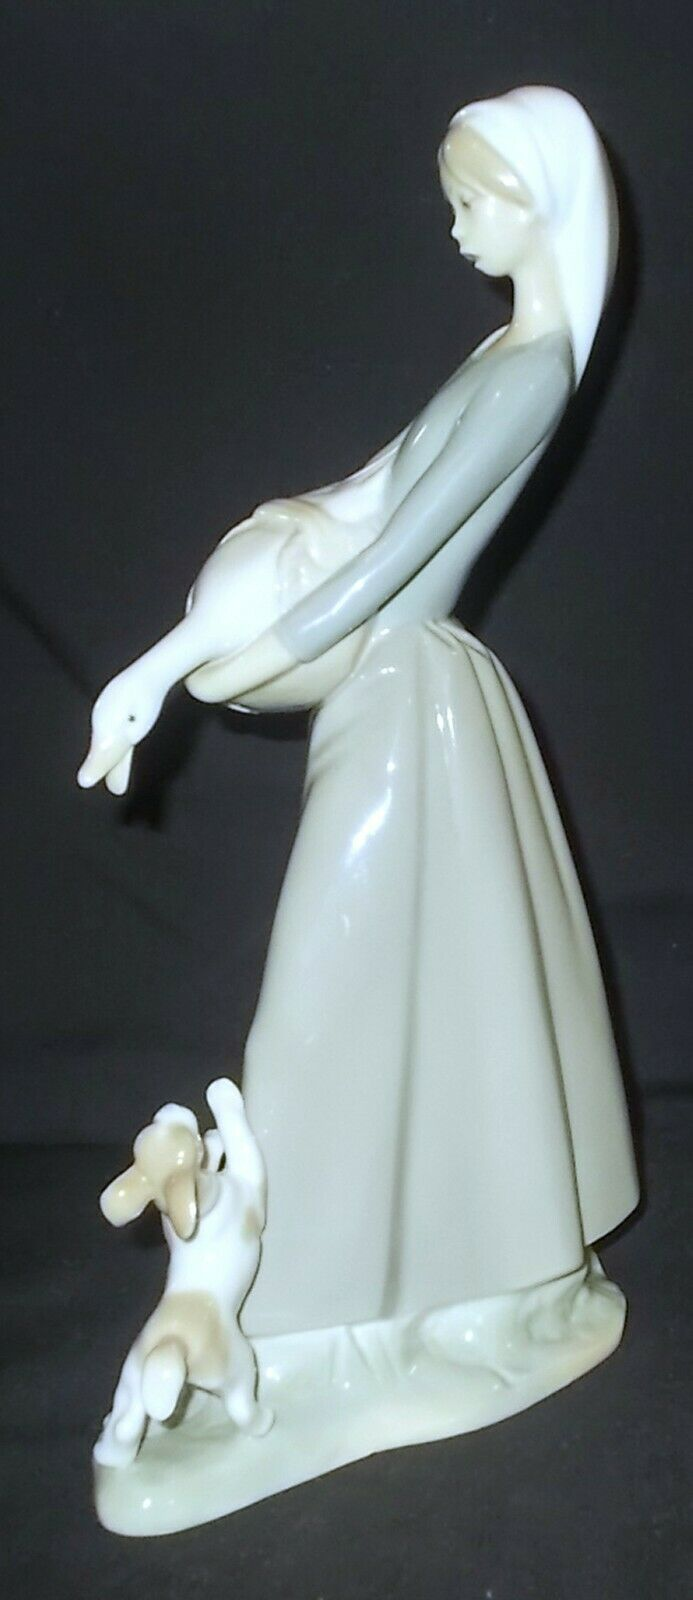 Image 2 - Lladro GIRL WITH GOOSE AND DOG #4866 Figure - Made in Spain